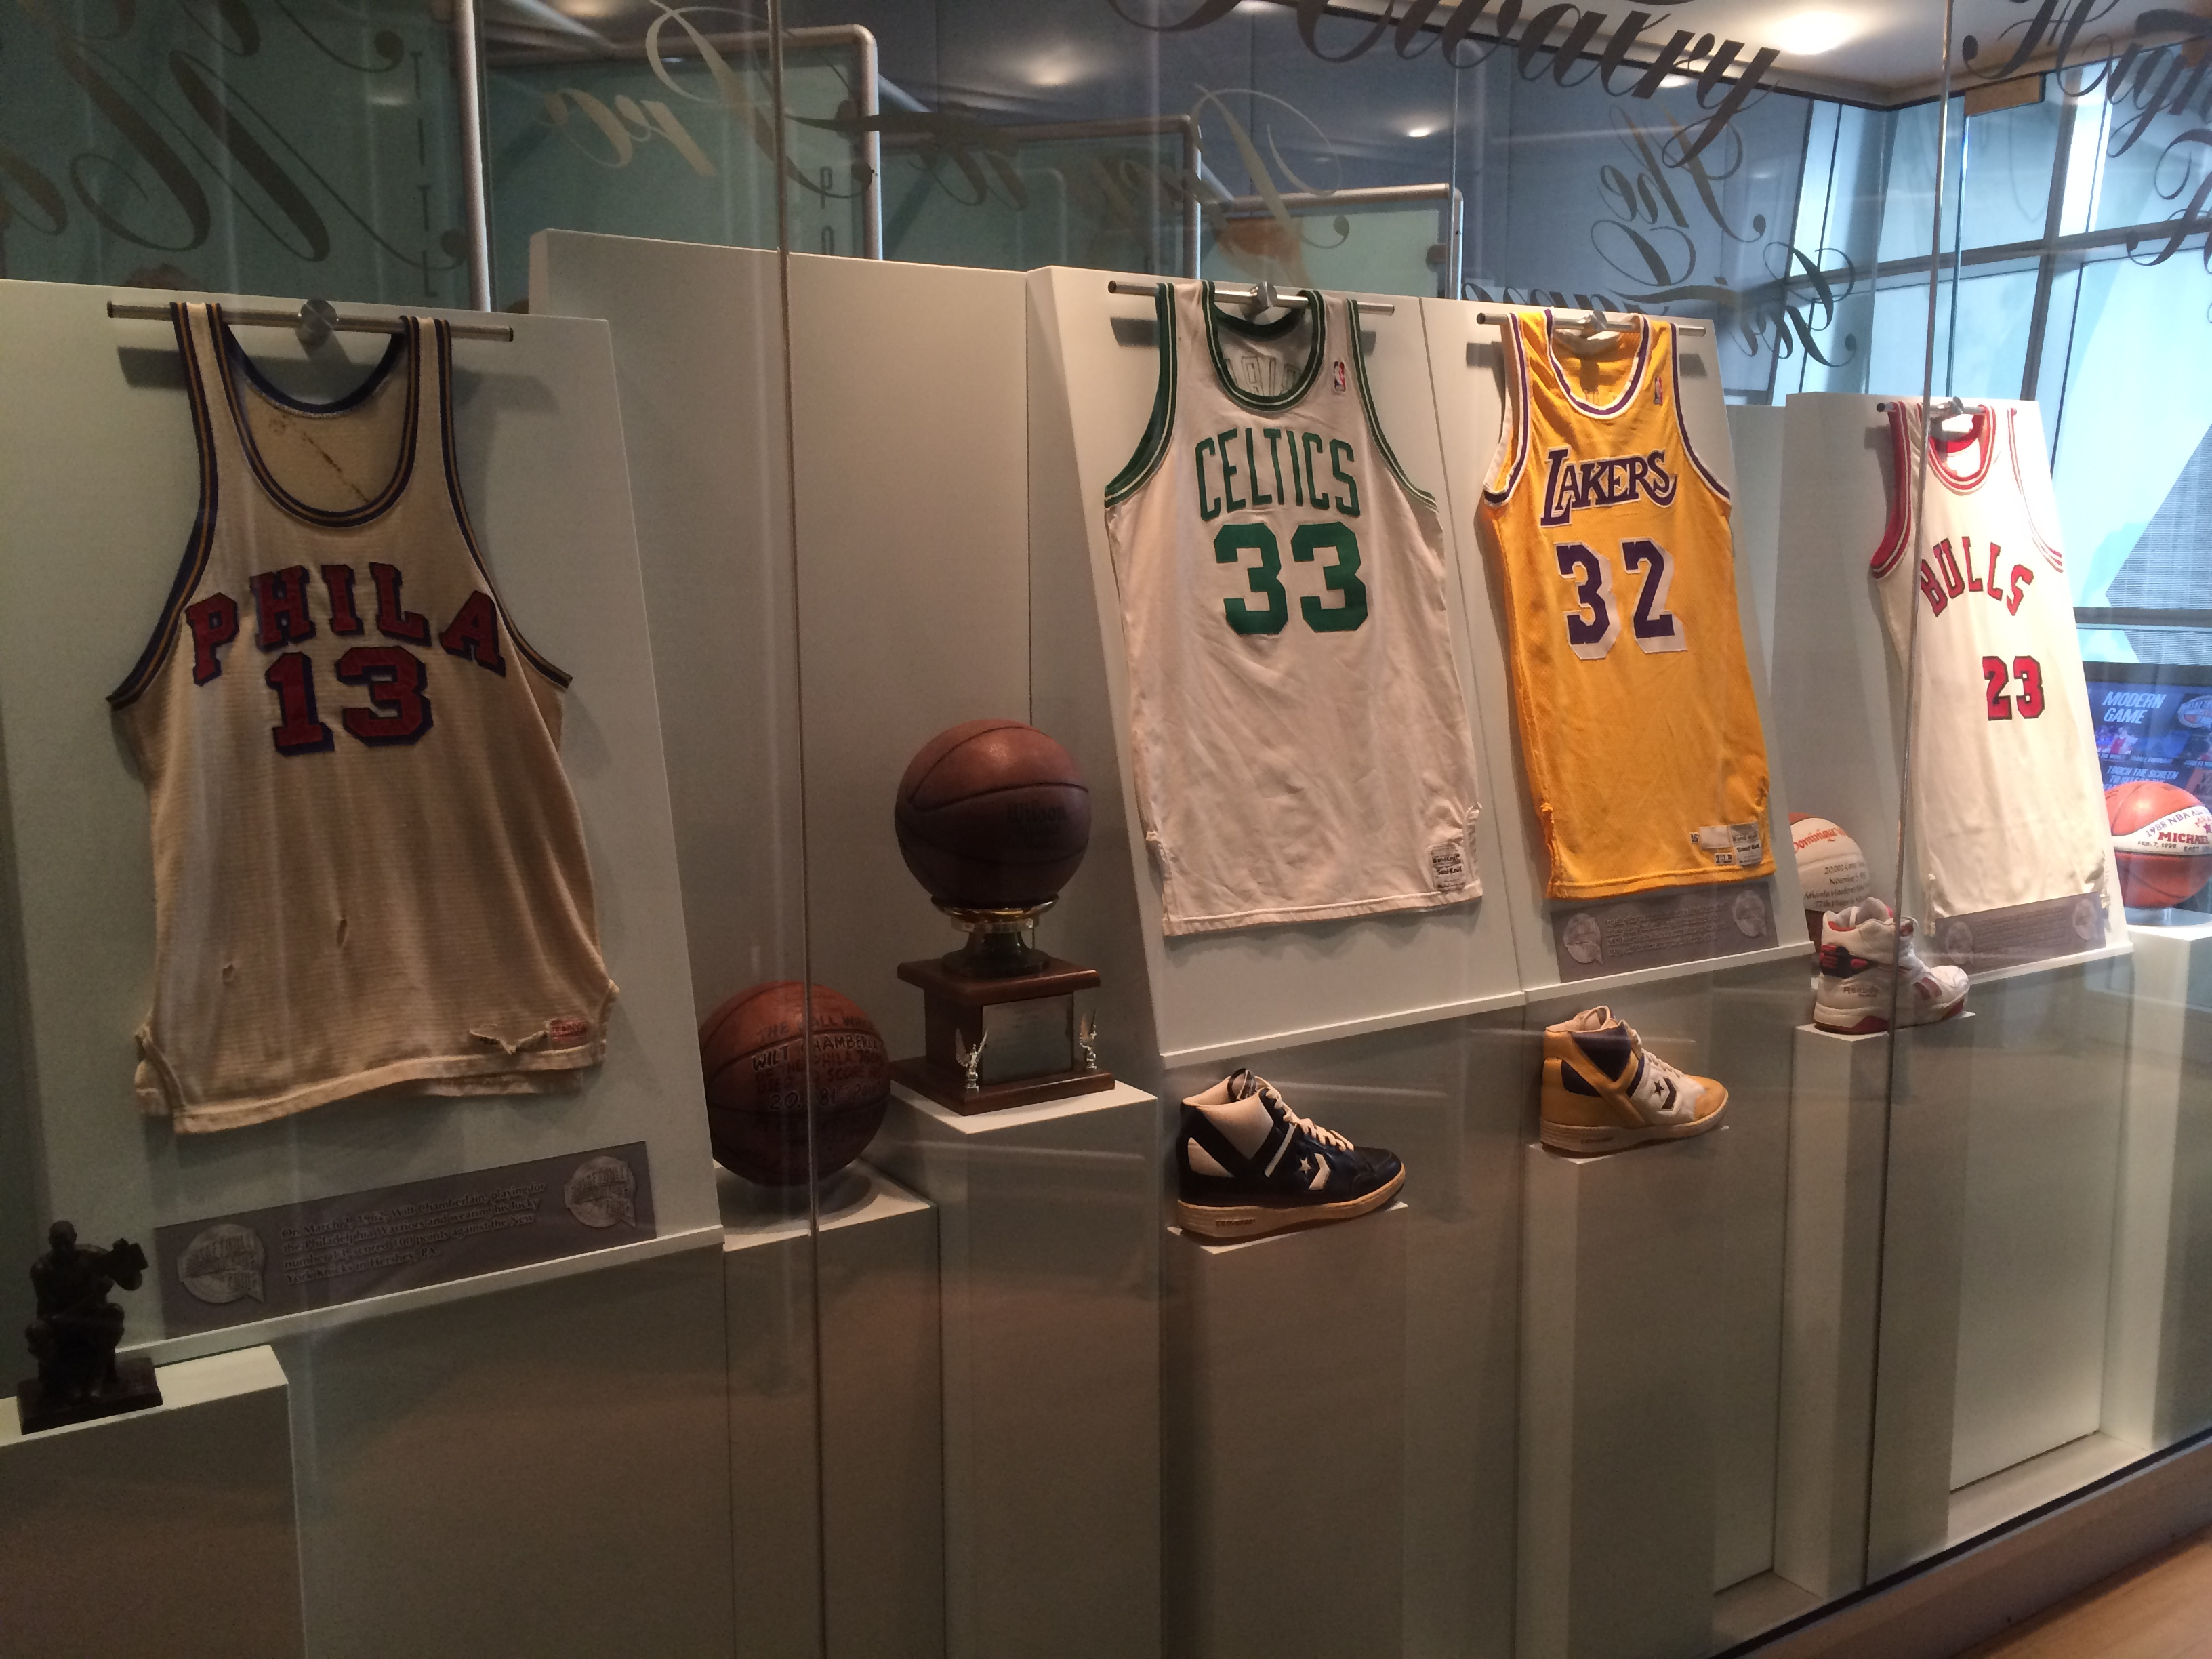 """Left to right, jerseys and shoes from Hall of Famer, Wilt Chamberlain (#13), Larry Bird (#33), Ervin """"Magic"""" Johnson (#32) and Michael Jordan (#23), at the Naismith Memorial Basketball Hall of Fame in Springfield, MA."""